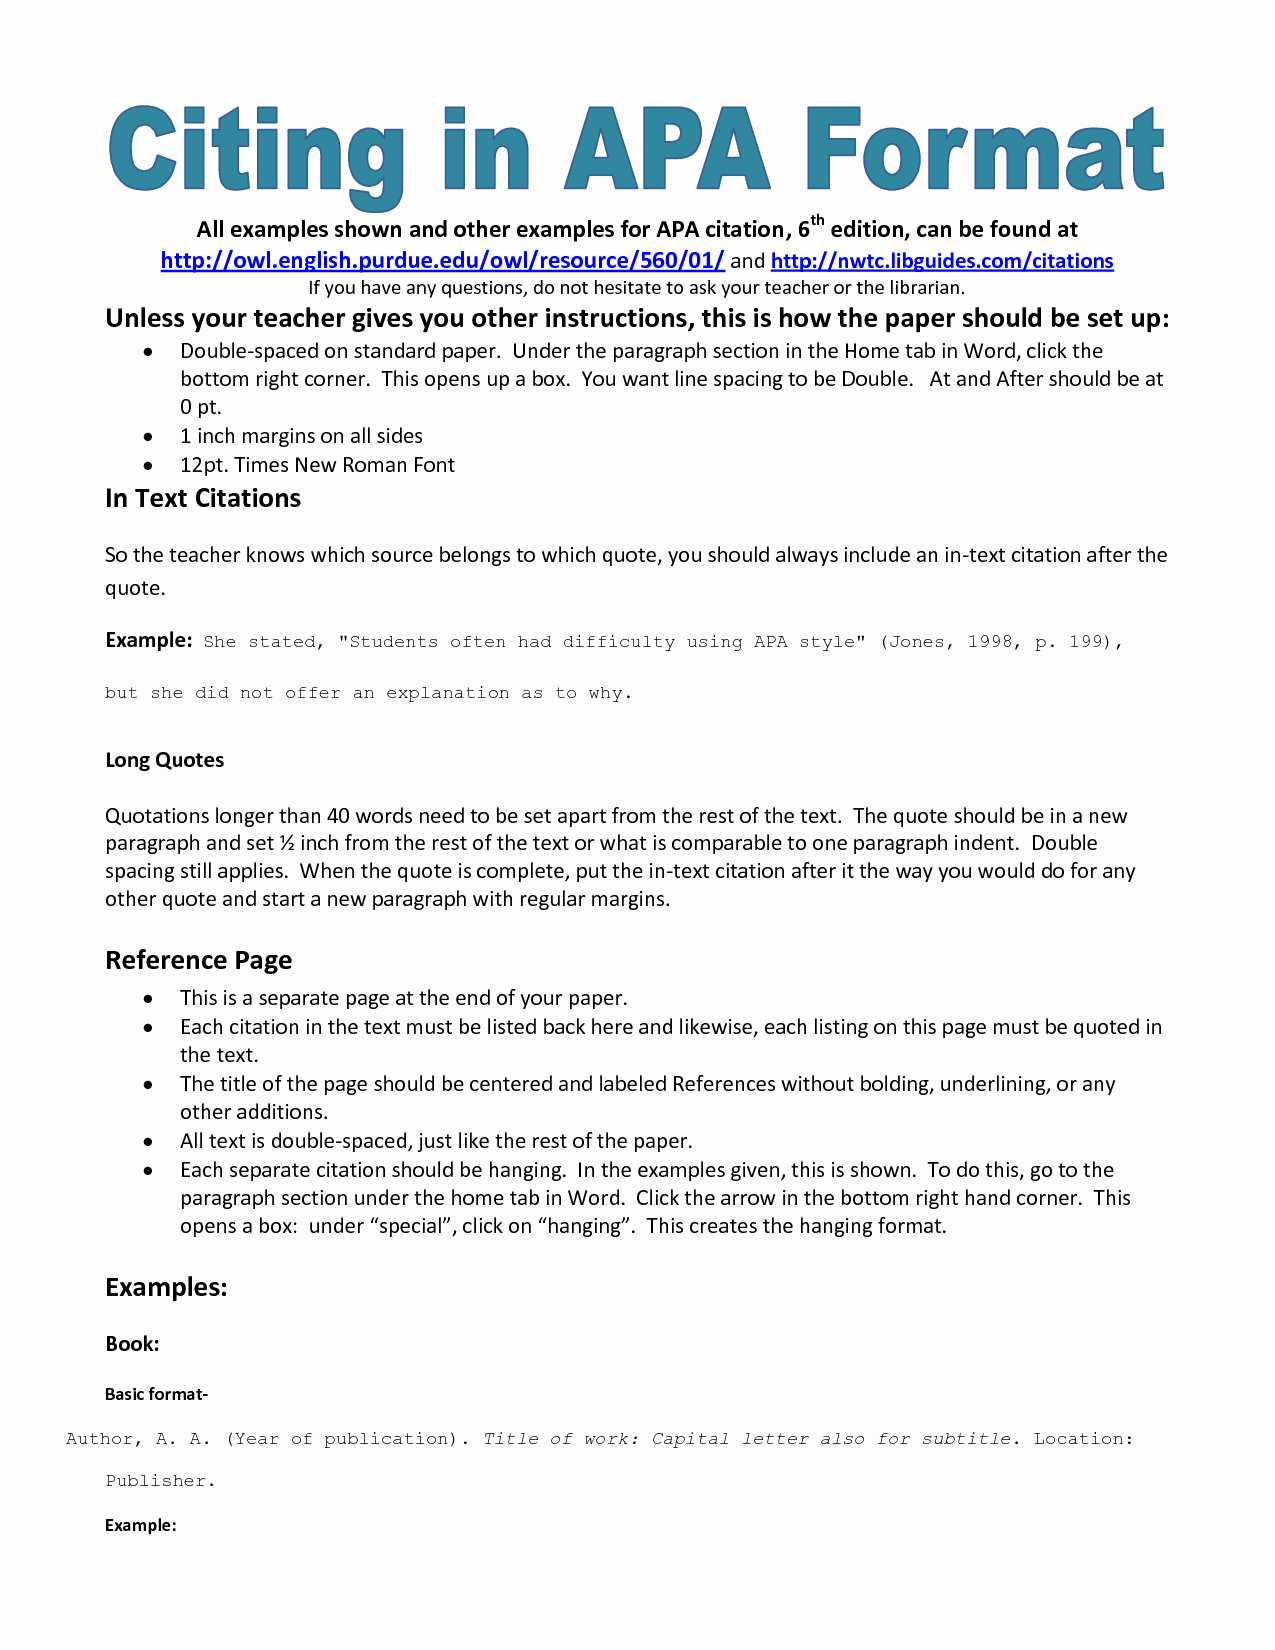 College Essay format Apa Awesome Example Of Apa Citation In Paper